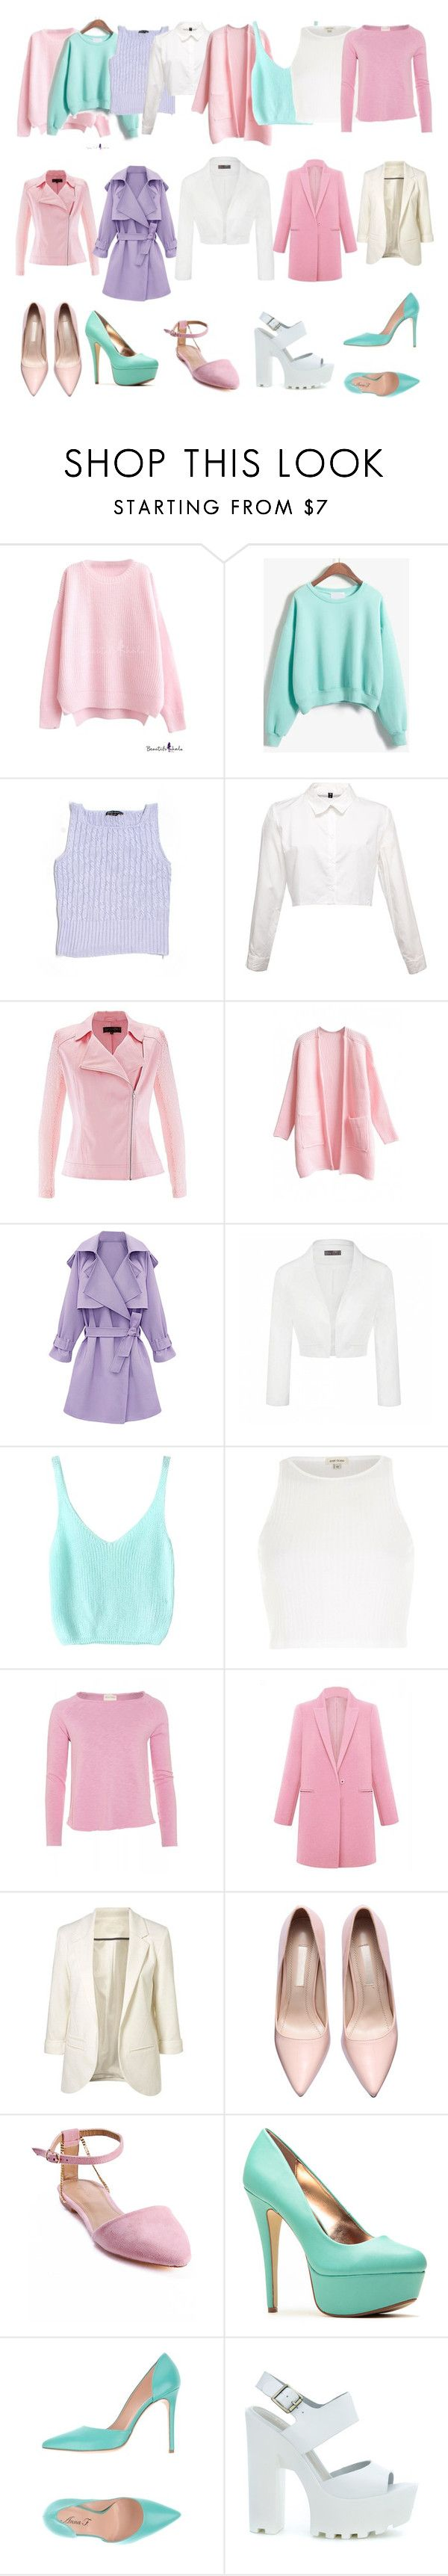 """Scream Queens Base Wardrobe"" by pollypotter ❤ liked on Polyvore featuring Adrienne Vittadini, Ally Fashion, River Island, American Vintage, Sergio Bari, Anna F., Windsor Smith, women's clothing, women and female"